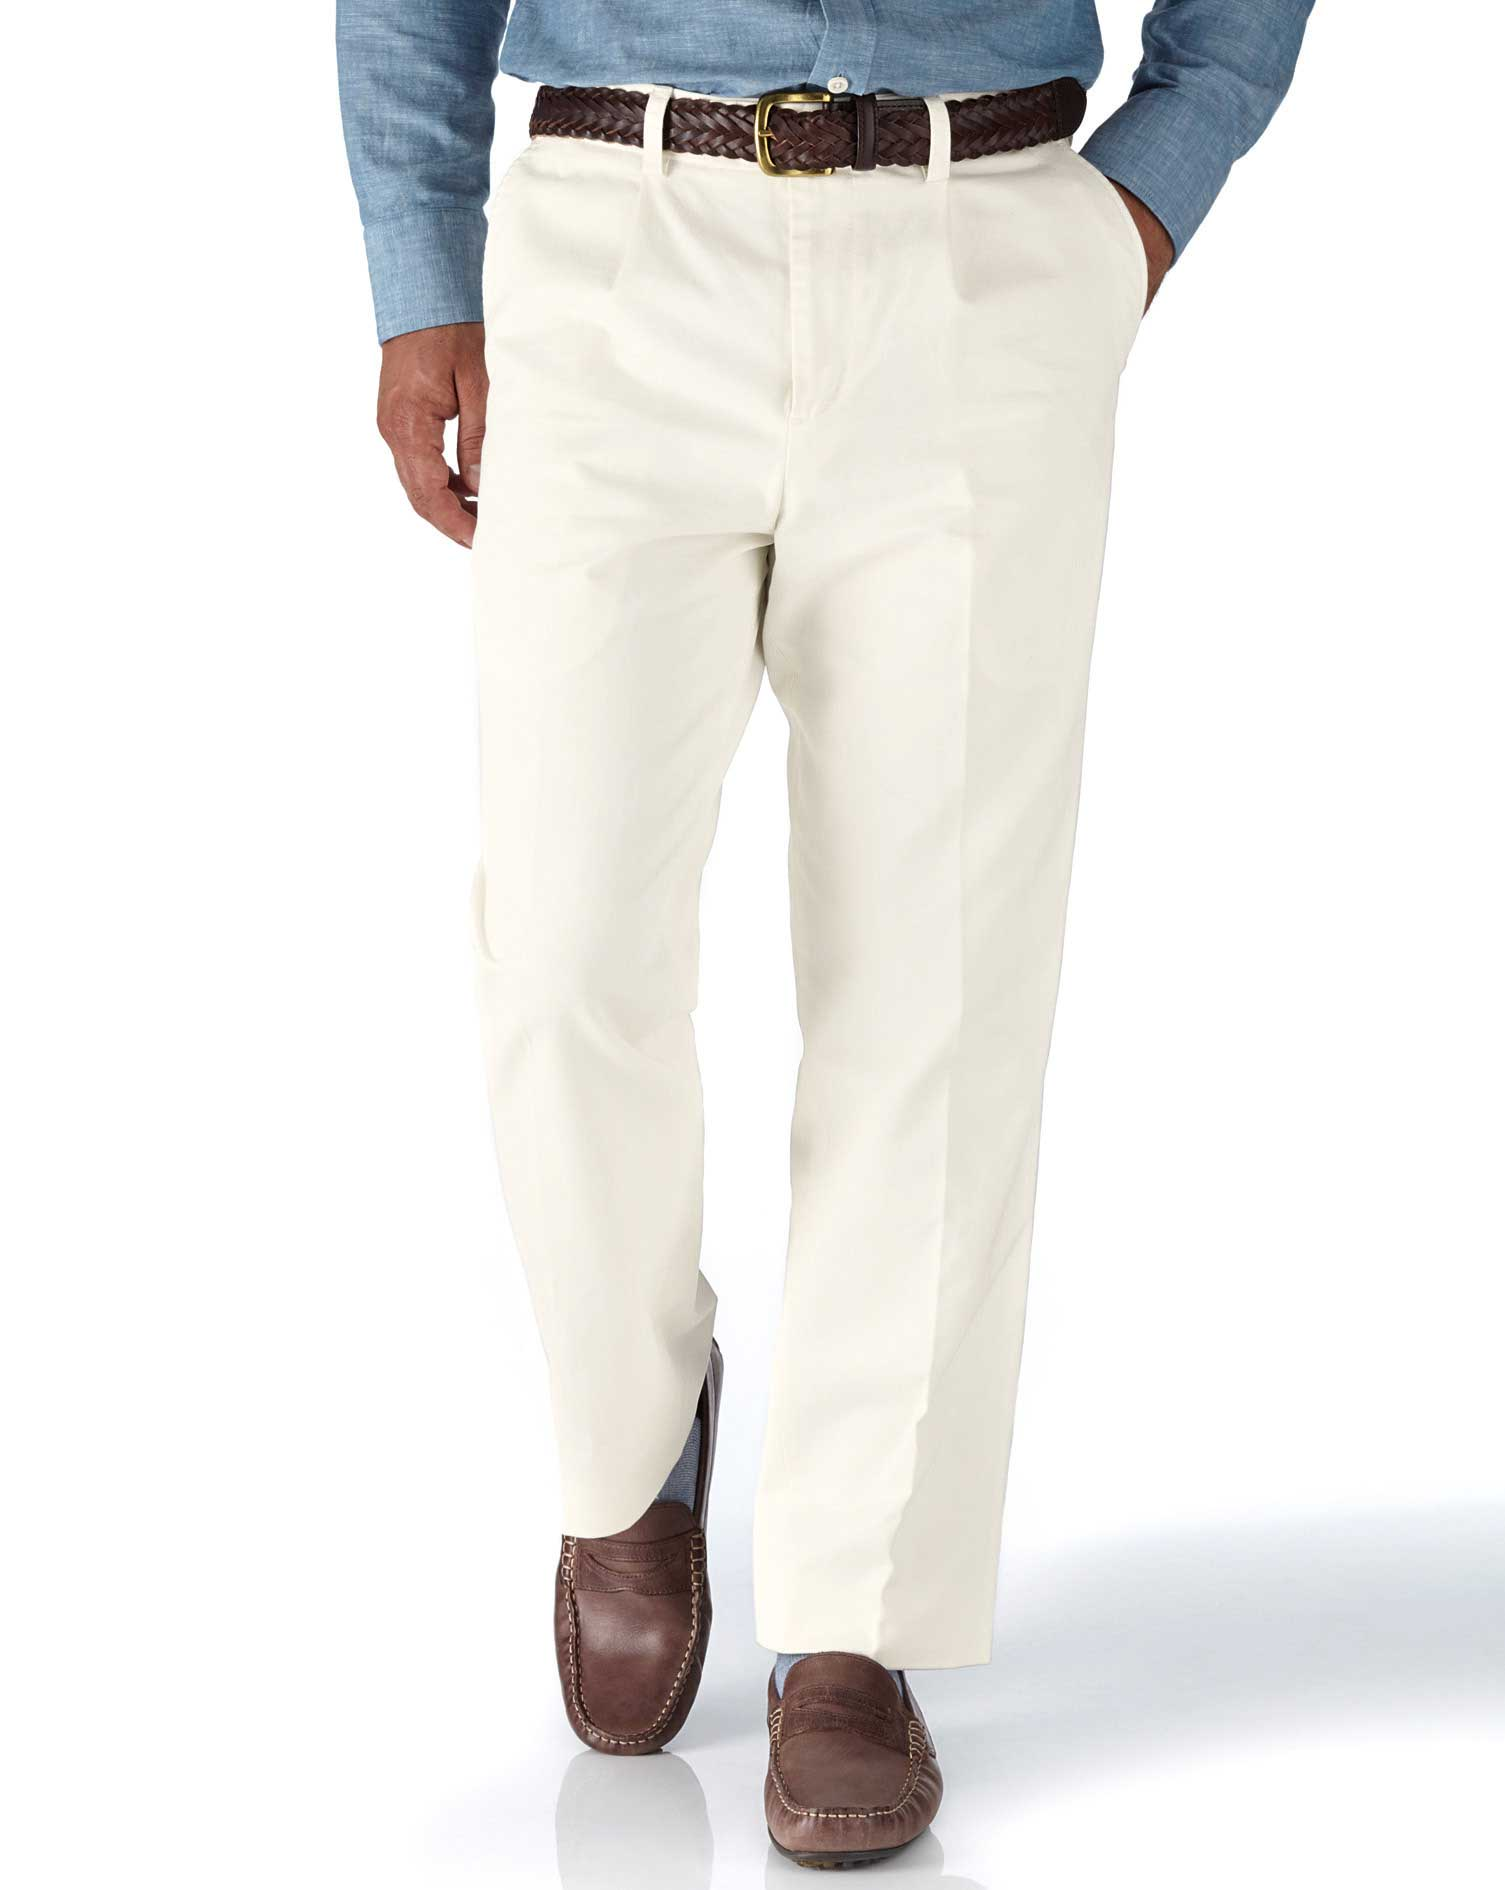 White Classic Fit Single Pleat Weekend Cotton Chino Trousers Size W36 L34 by Charles Tyrwhitt